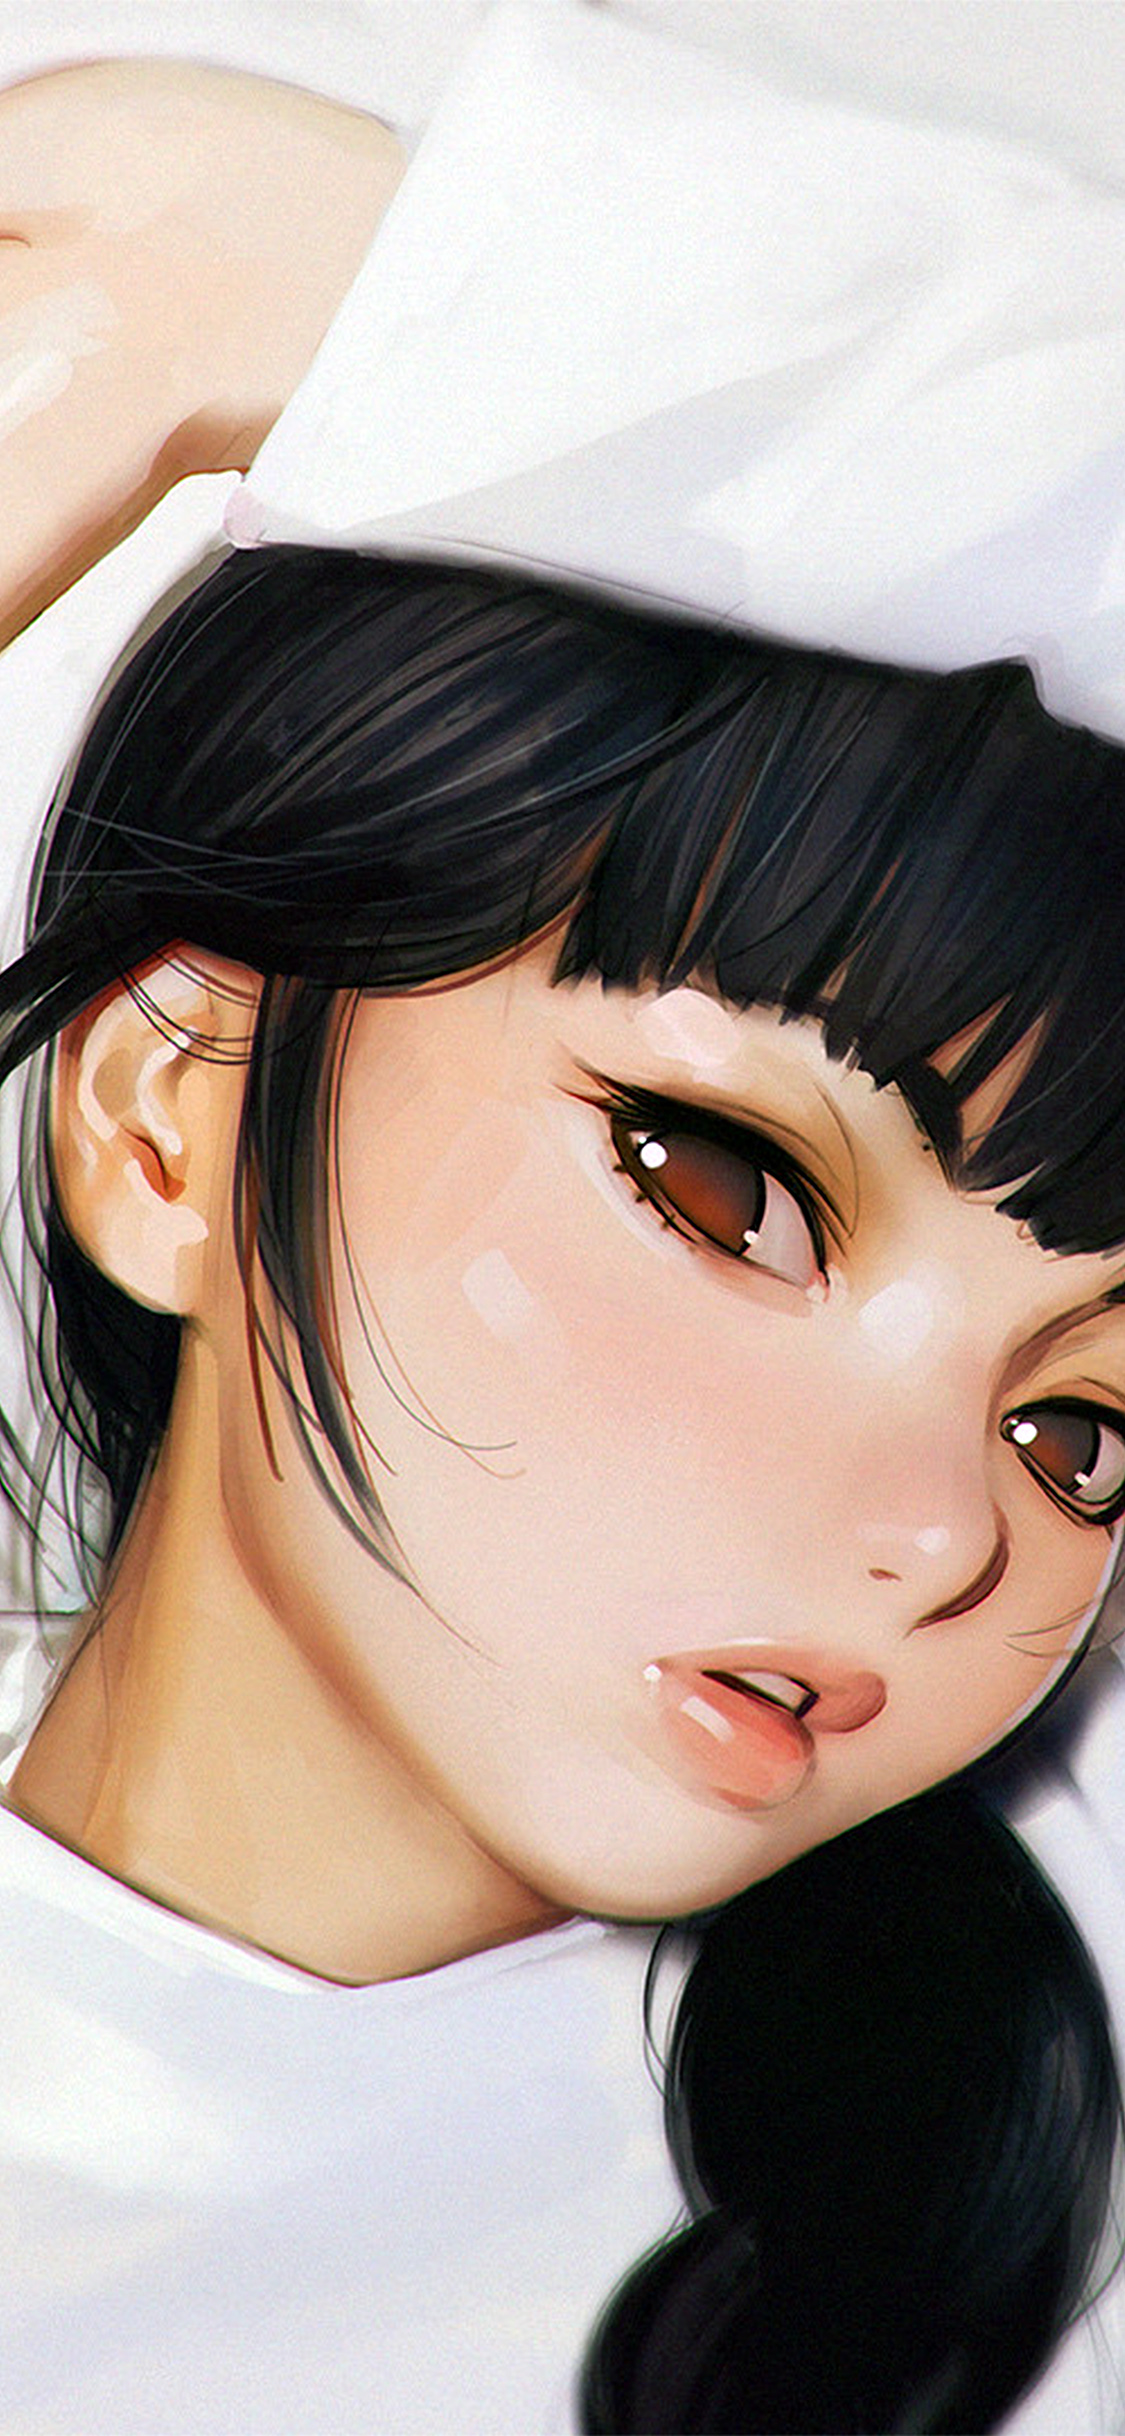 iPhoneXpapers.com-Apple-iPhone-wallpaper-aw25-ilya-kuvshinov-anime-girl-shy-cute-illustration-art-white